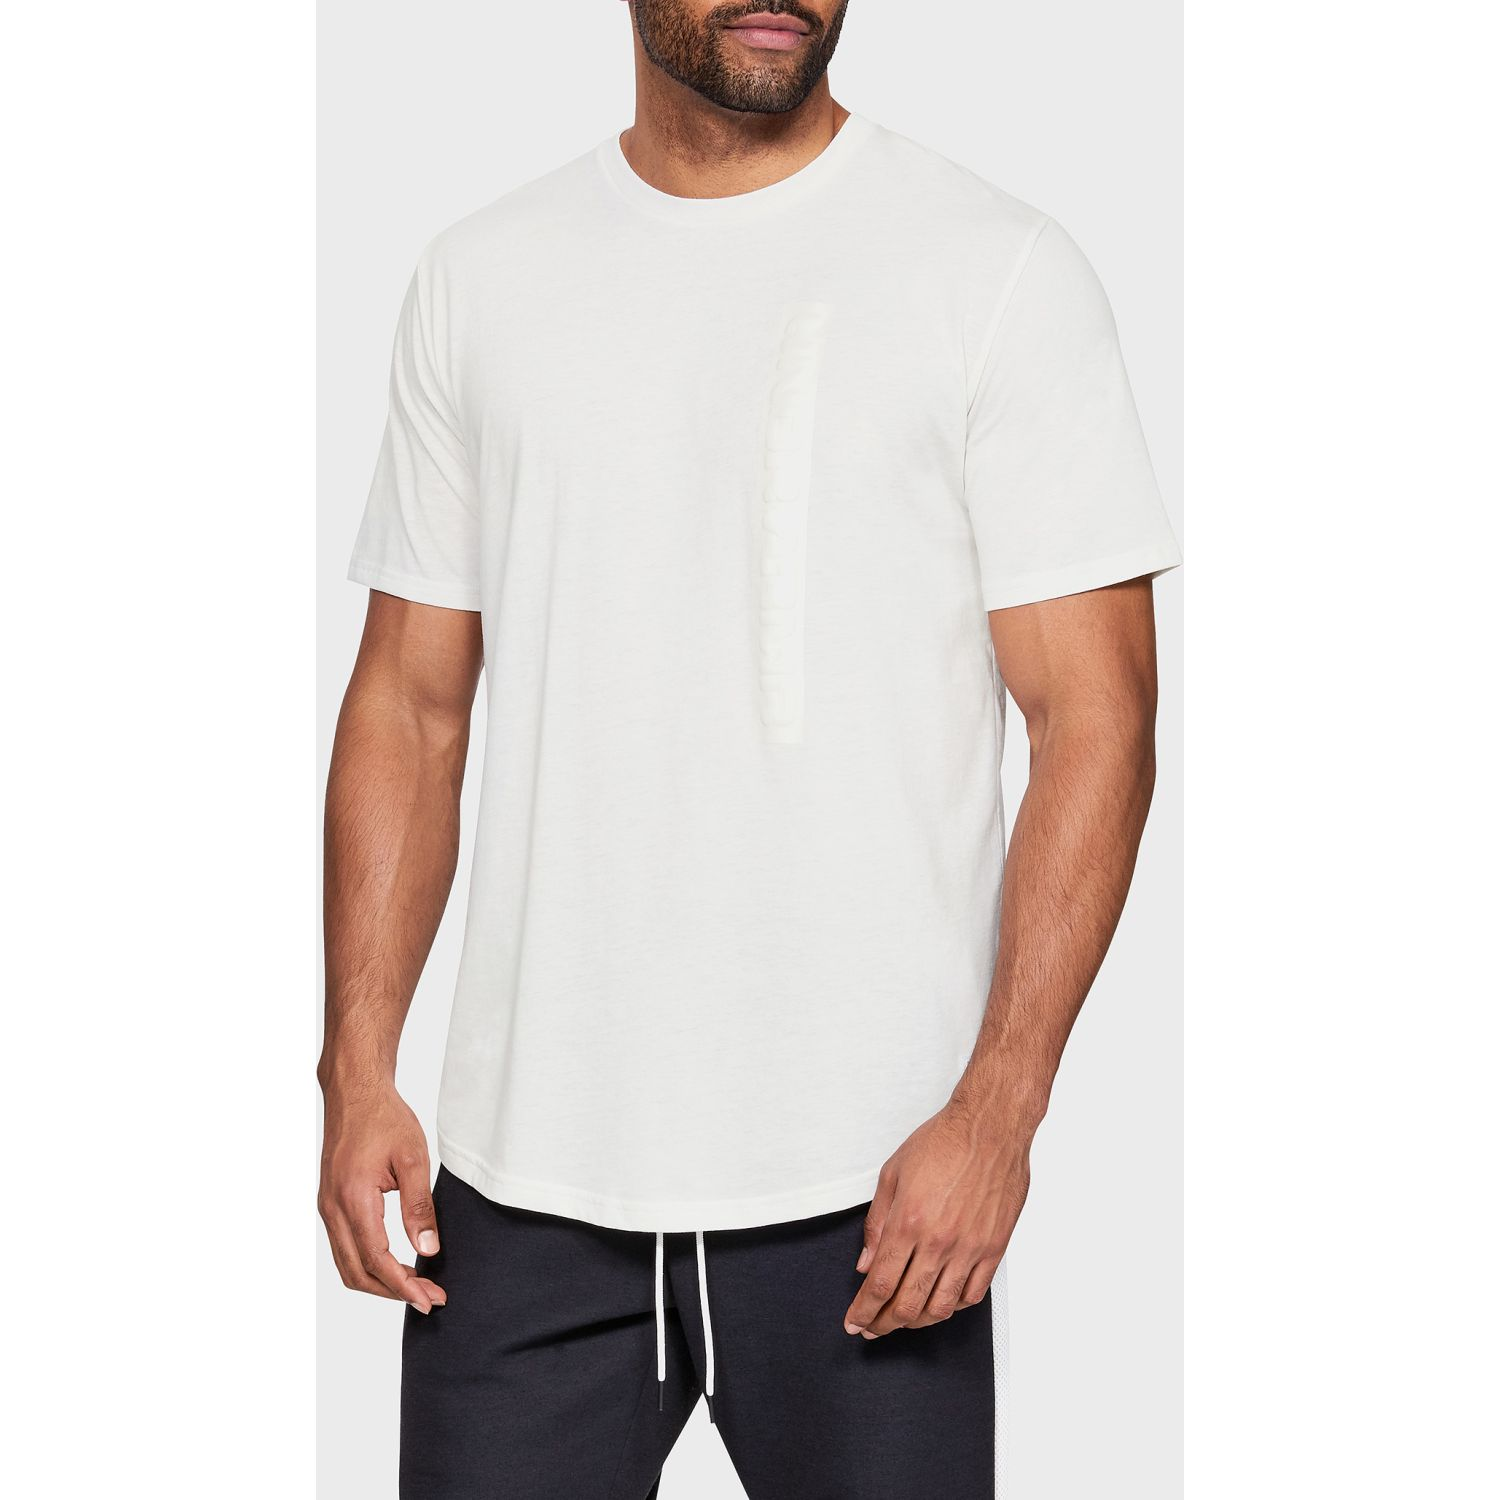 Deportivo de Hombre Under Armour Blanco ua pursuit wordmark core tee